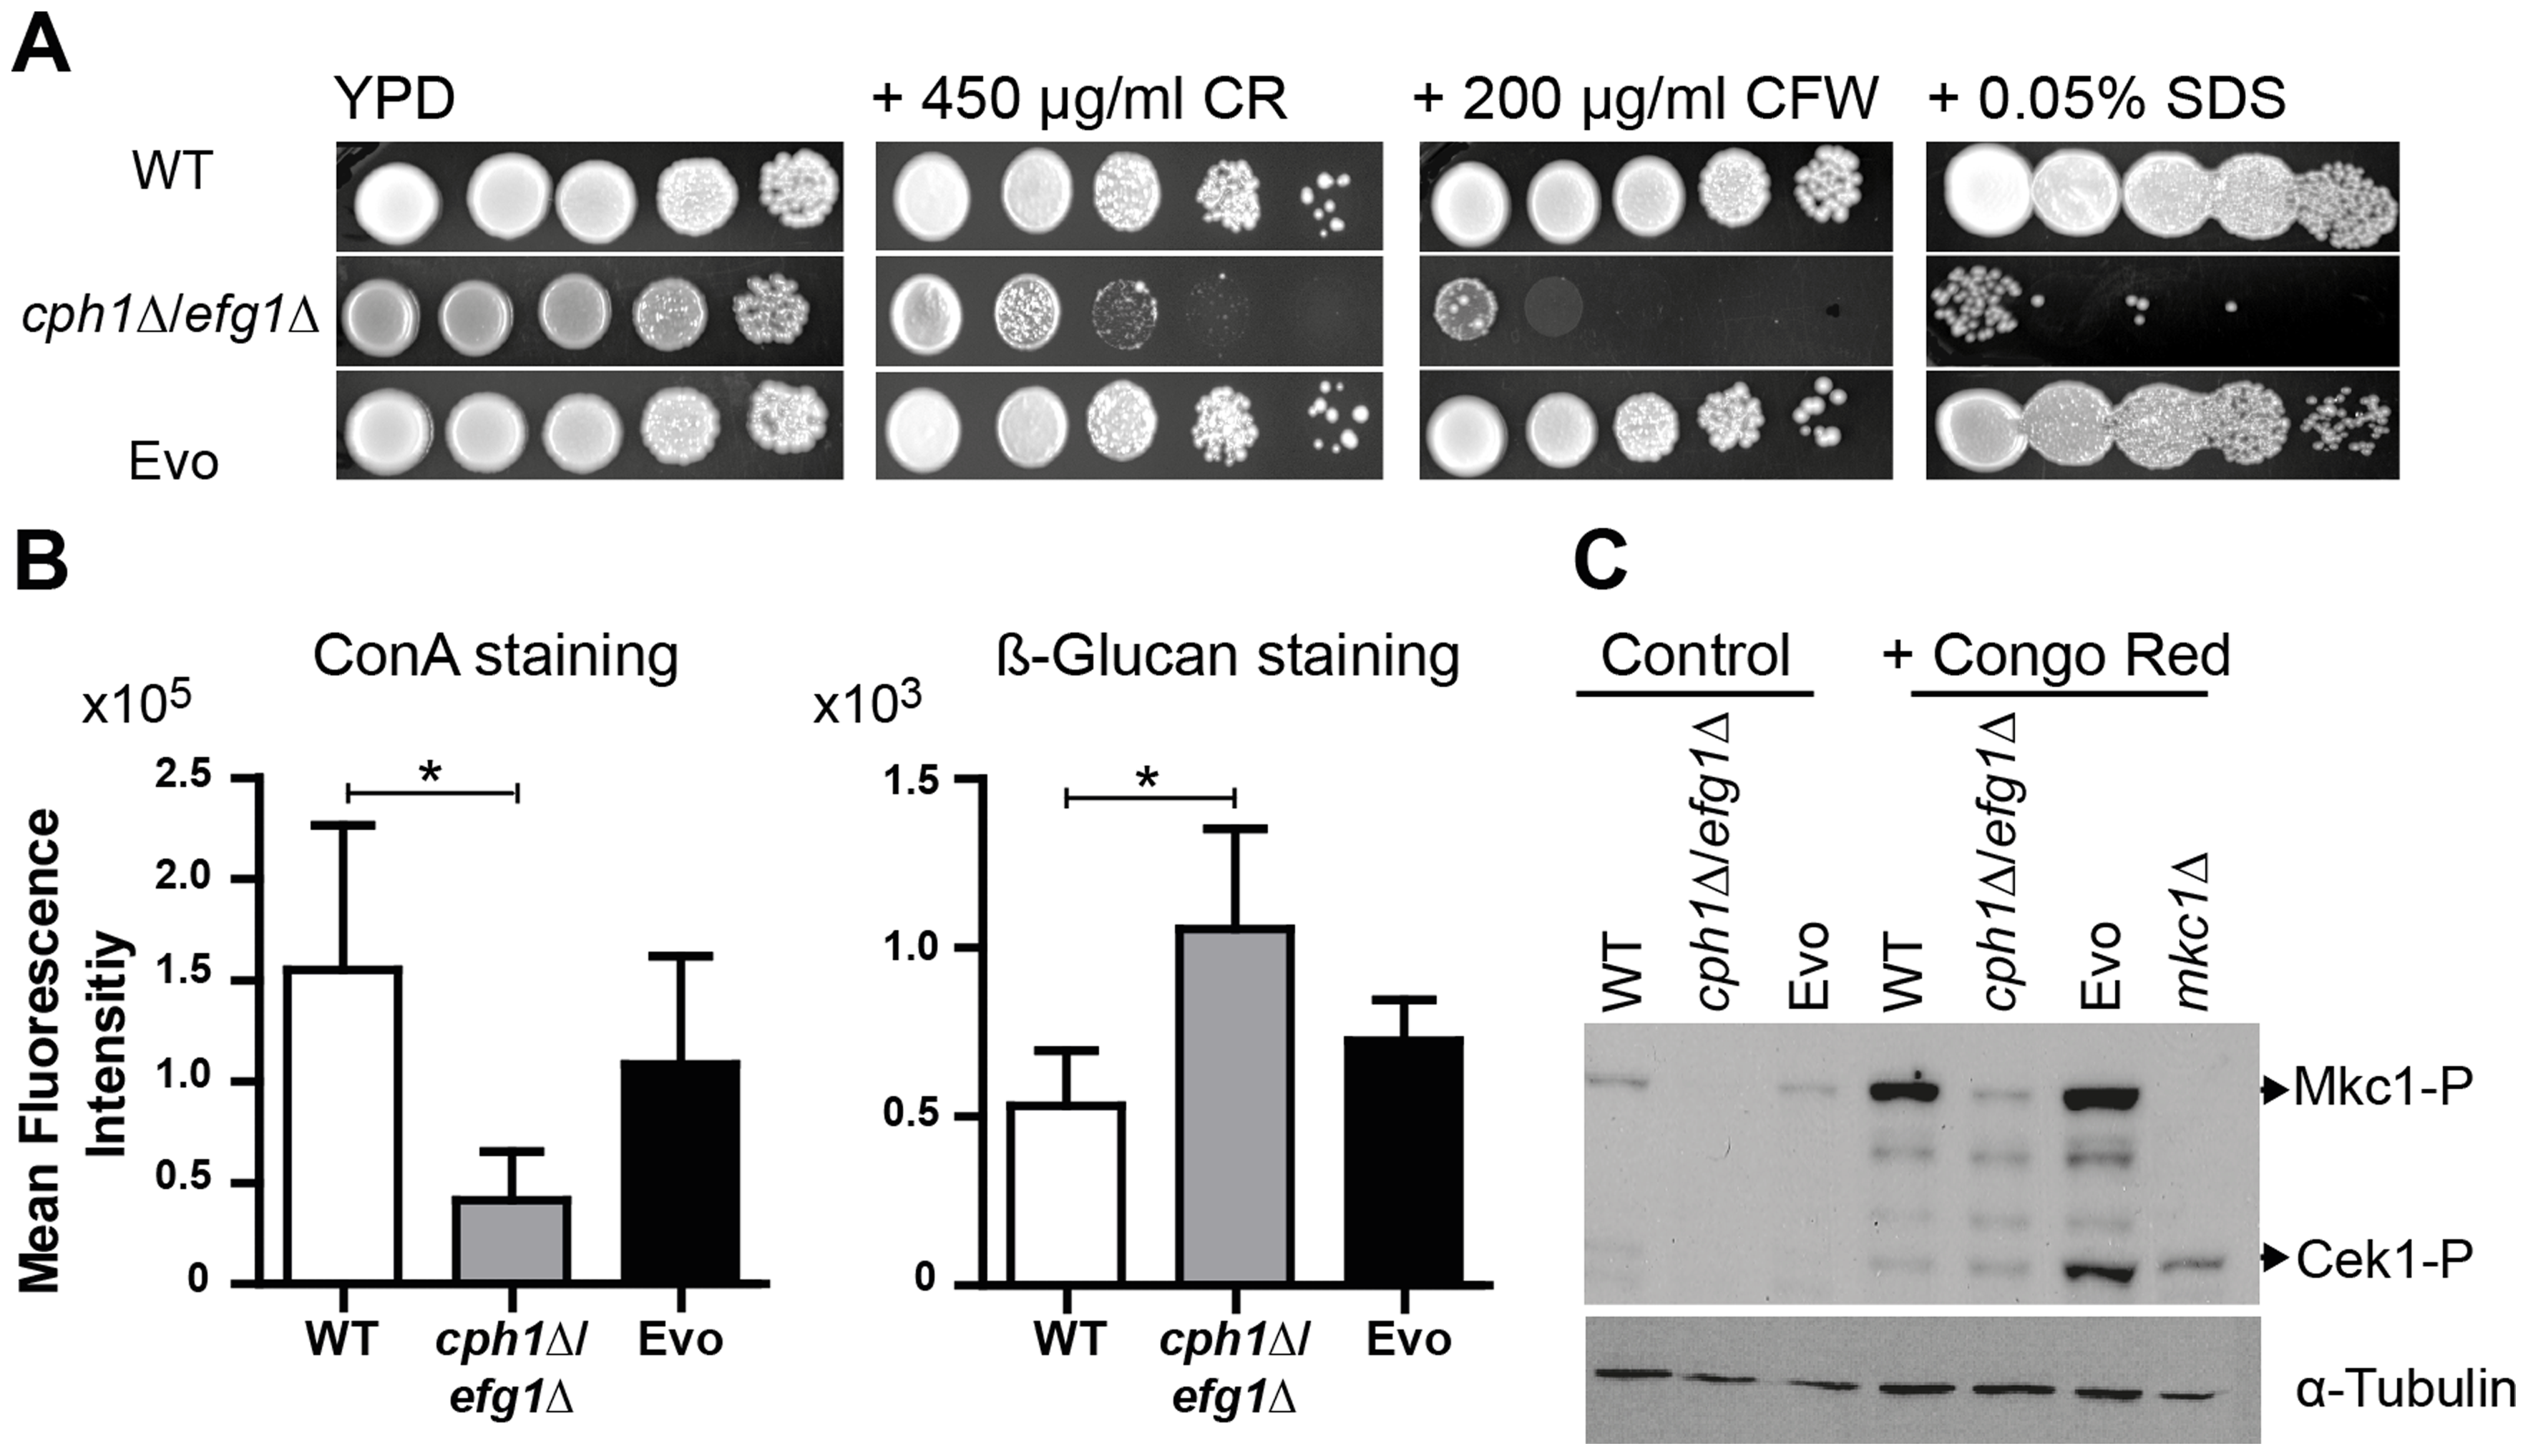 Microevolution led to decreased sensitivity of the Evo strain to different cell wall perturbing agents.